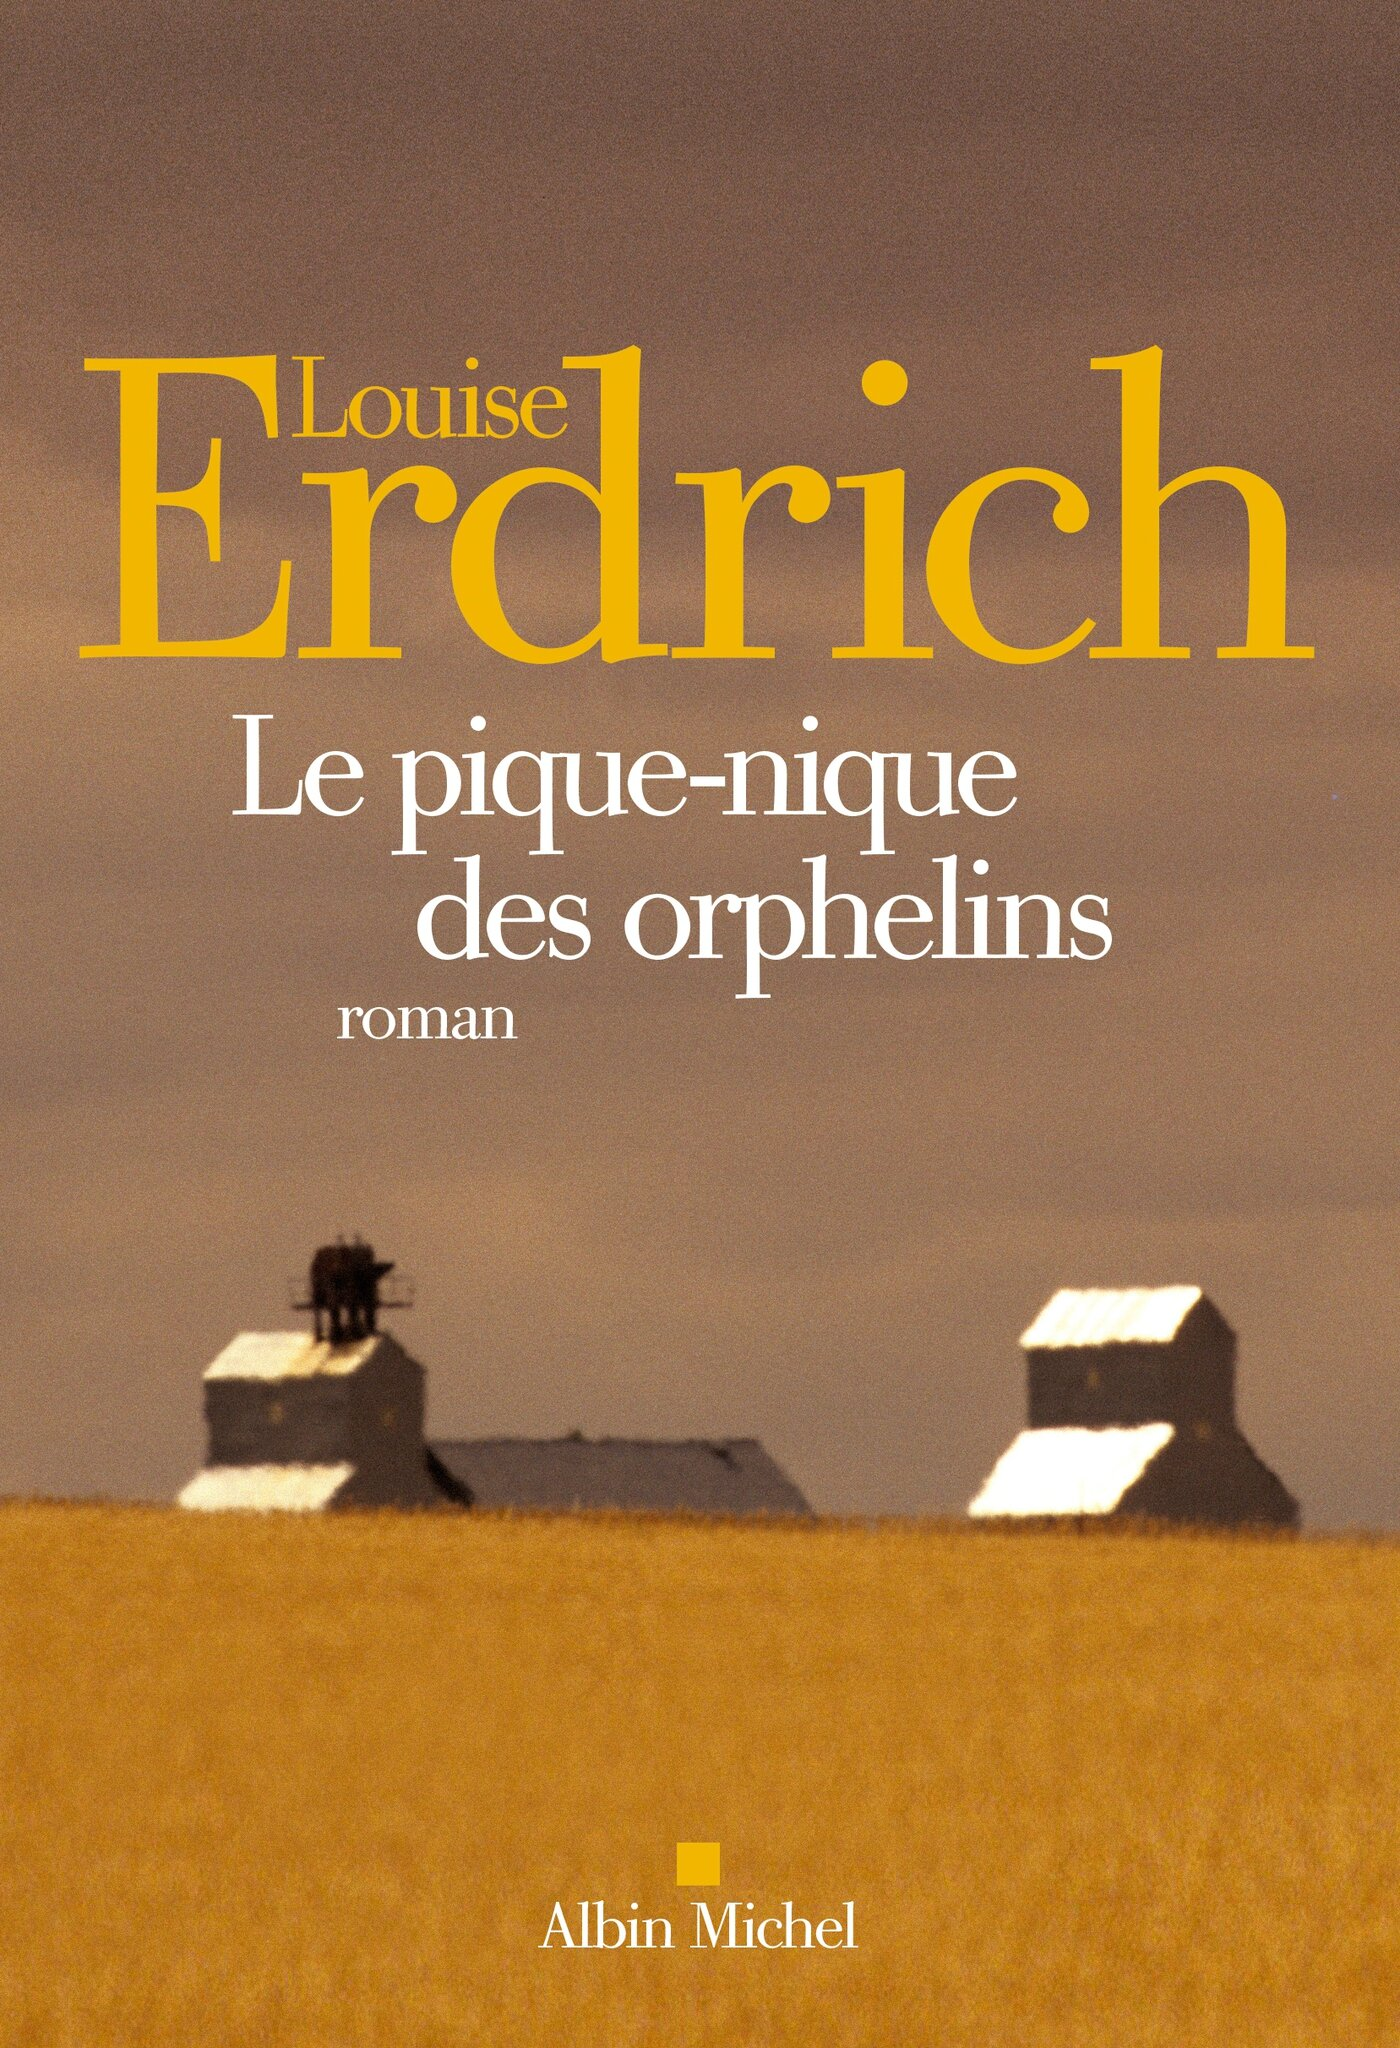 louise erdrich s fleur an analysis Four souls: a novel (erdrich, louise) [louise erdrich] on amazoncom free shipping on qualifying offers a strange and compelling unkillable woman decides to leave home, and the story begins fleur pillager takes her mother's name.